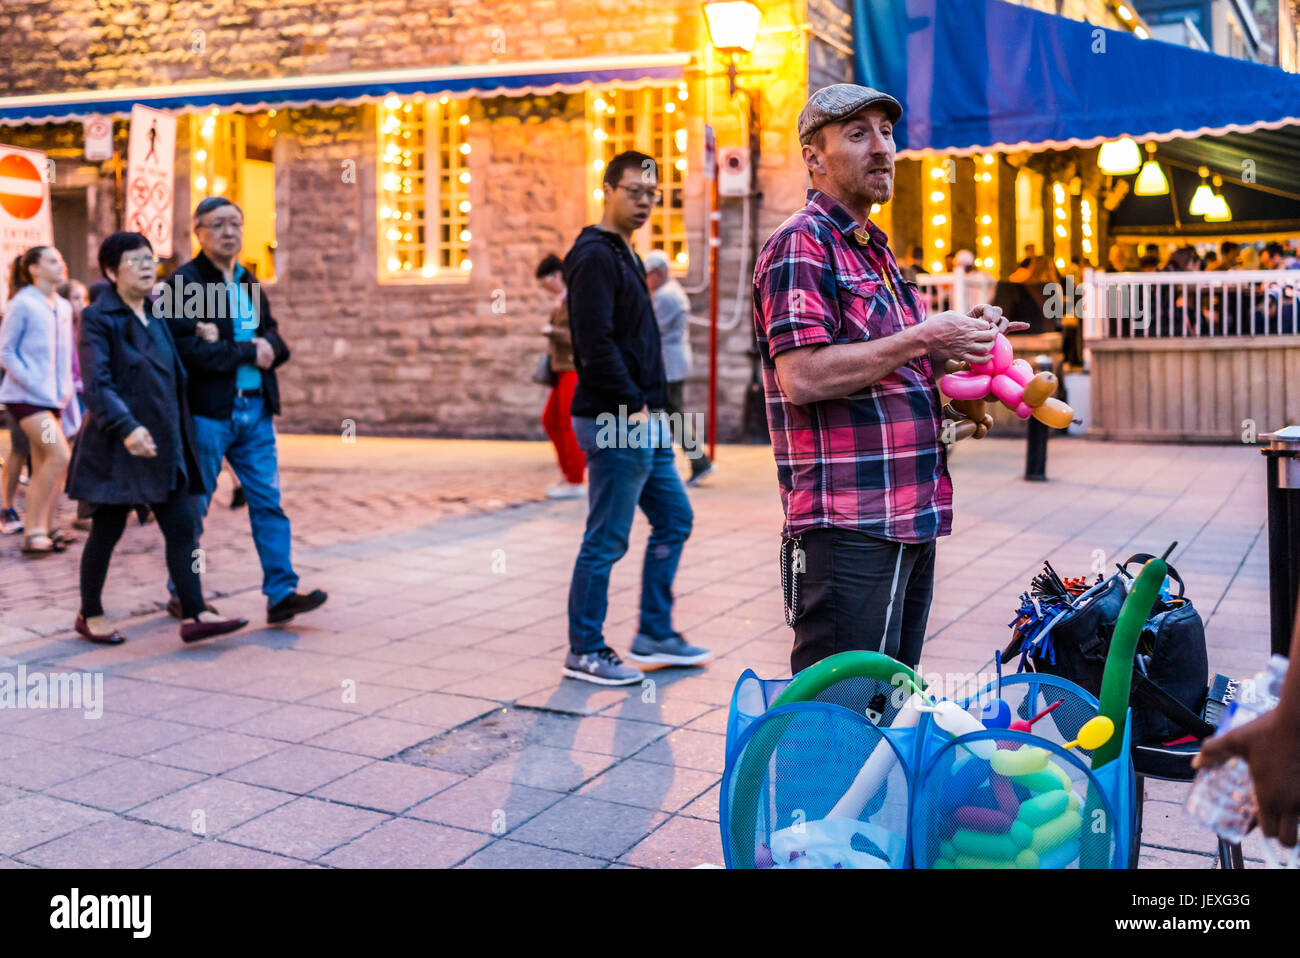 Montreal, Canada - May 27, 2017: Old town area with people walking up street in evening and balloon man in Quebec - Stock Image